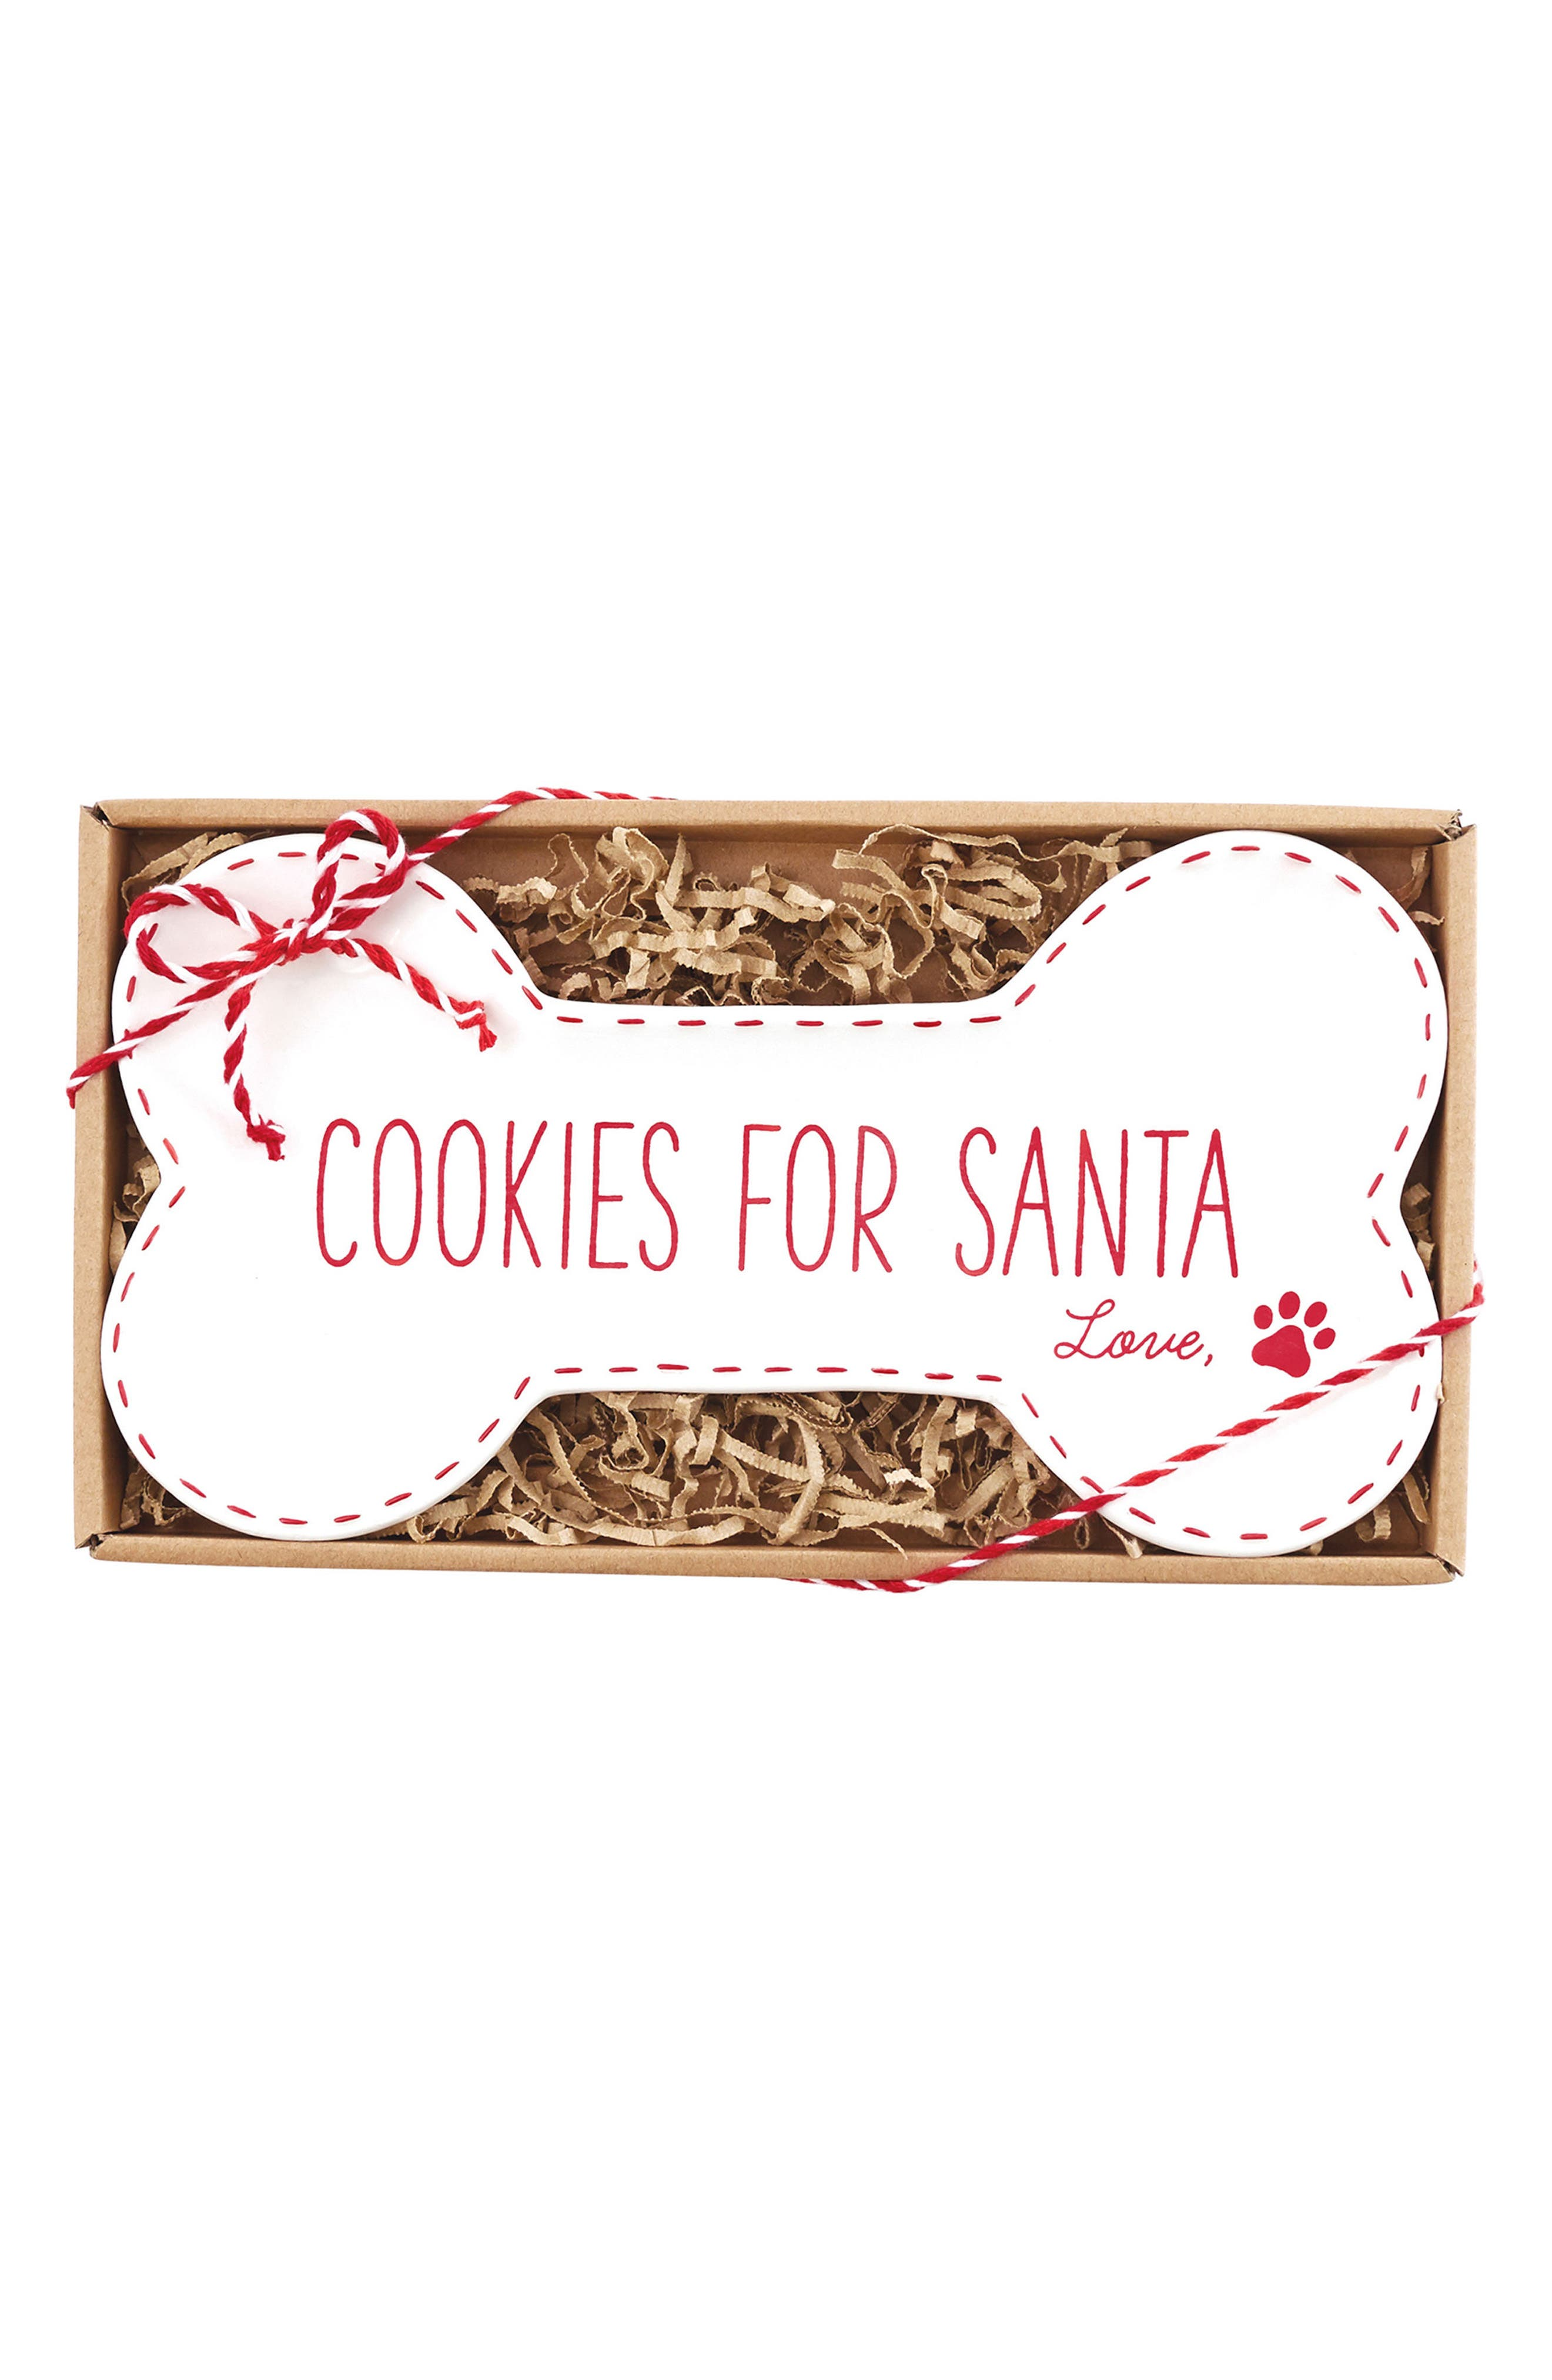 Cookies for Santa Plate,                         Main,                         color, White/ Red